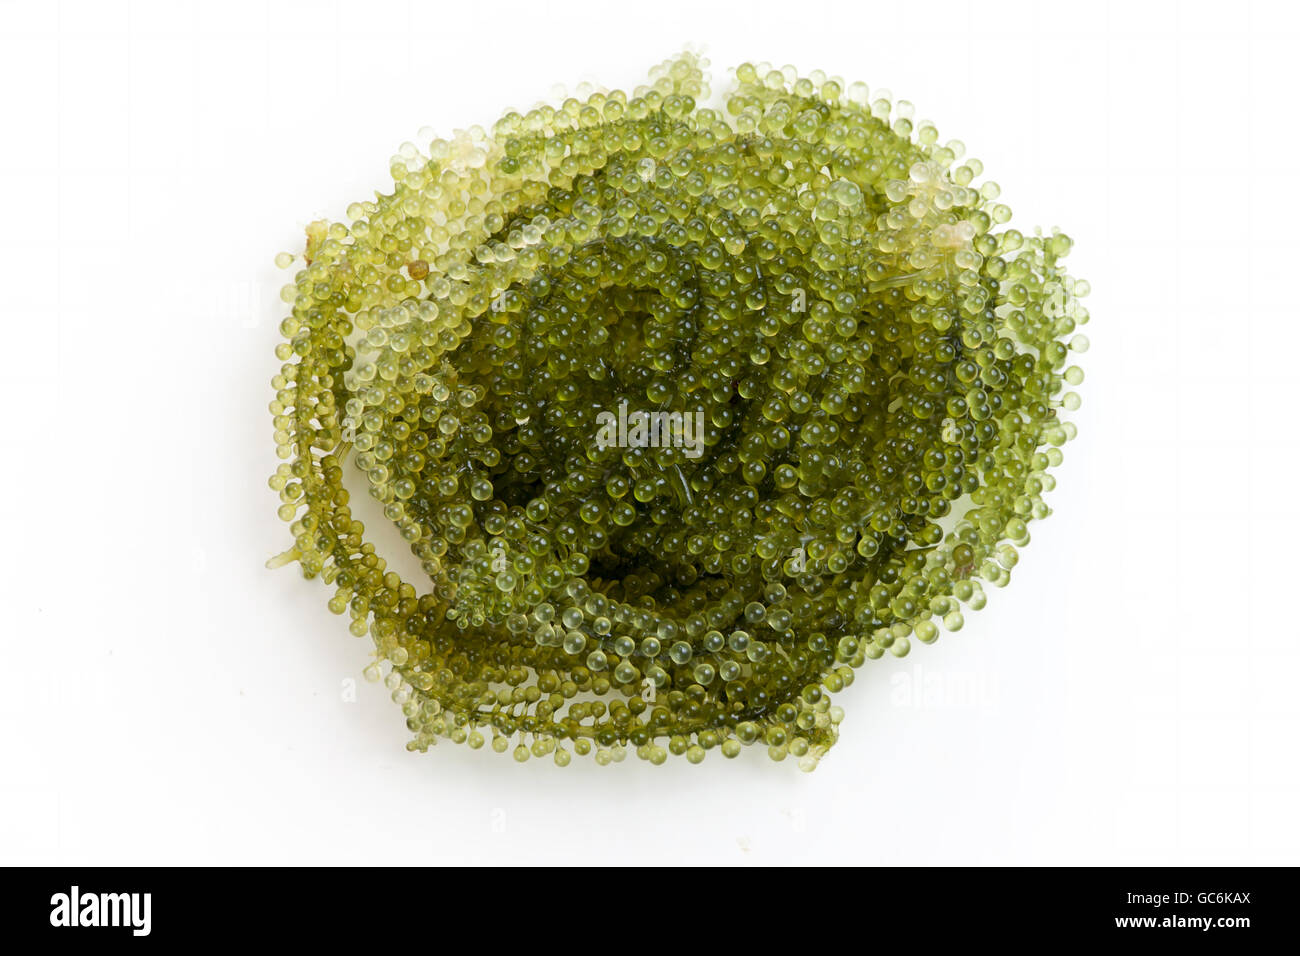 sea grapes or green caviar on white background - Stock Image